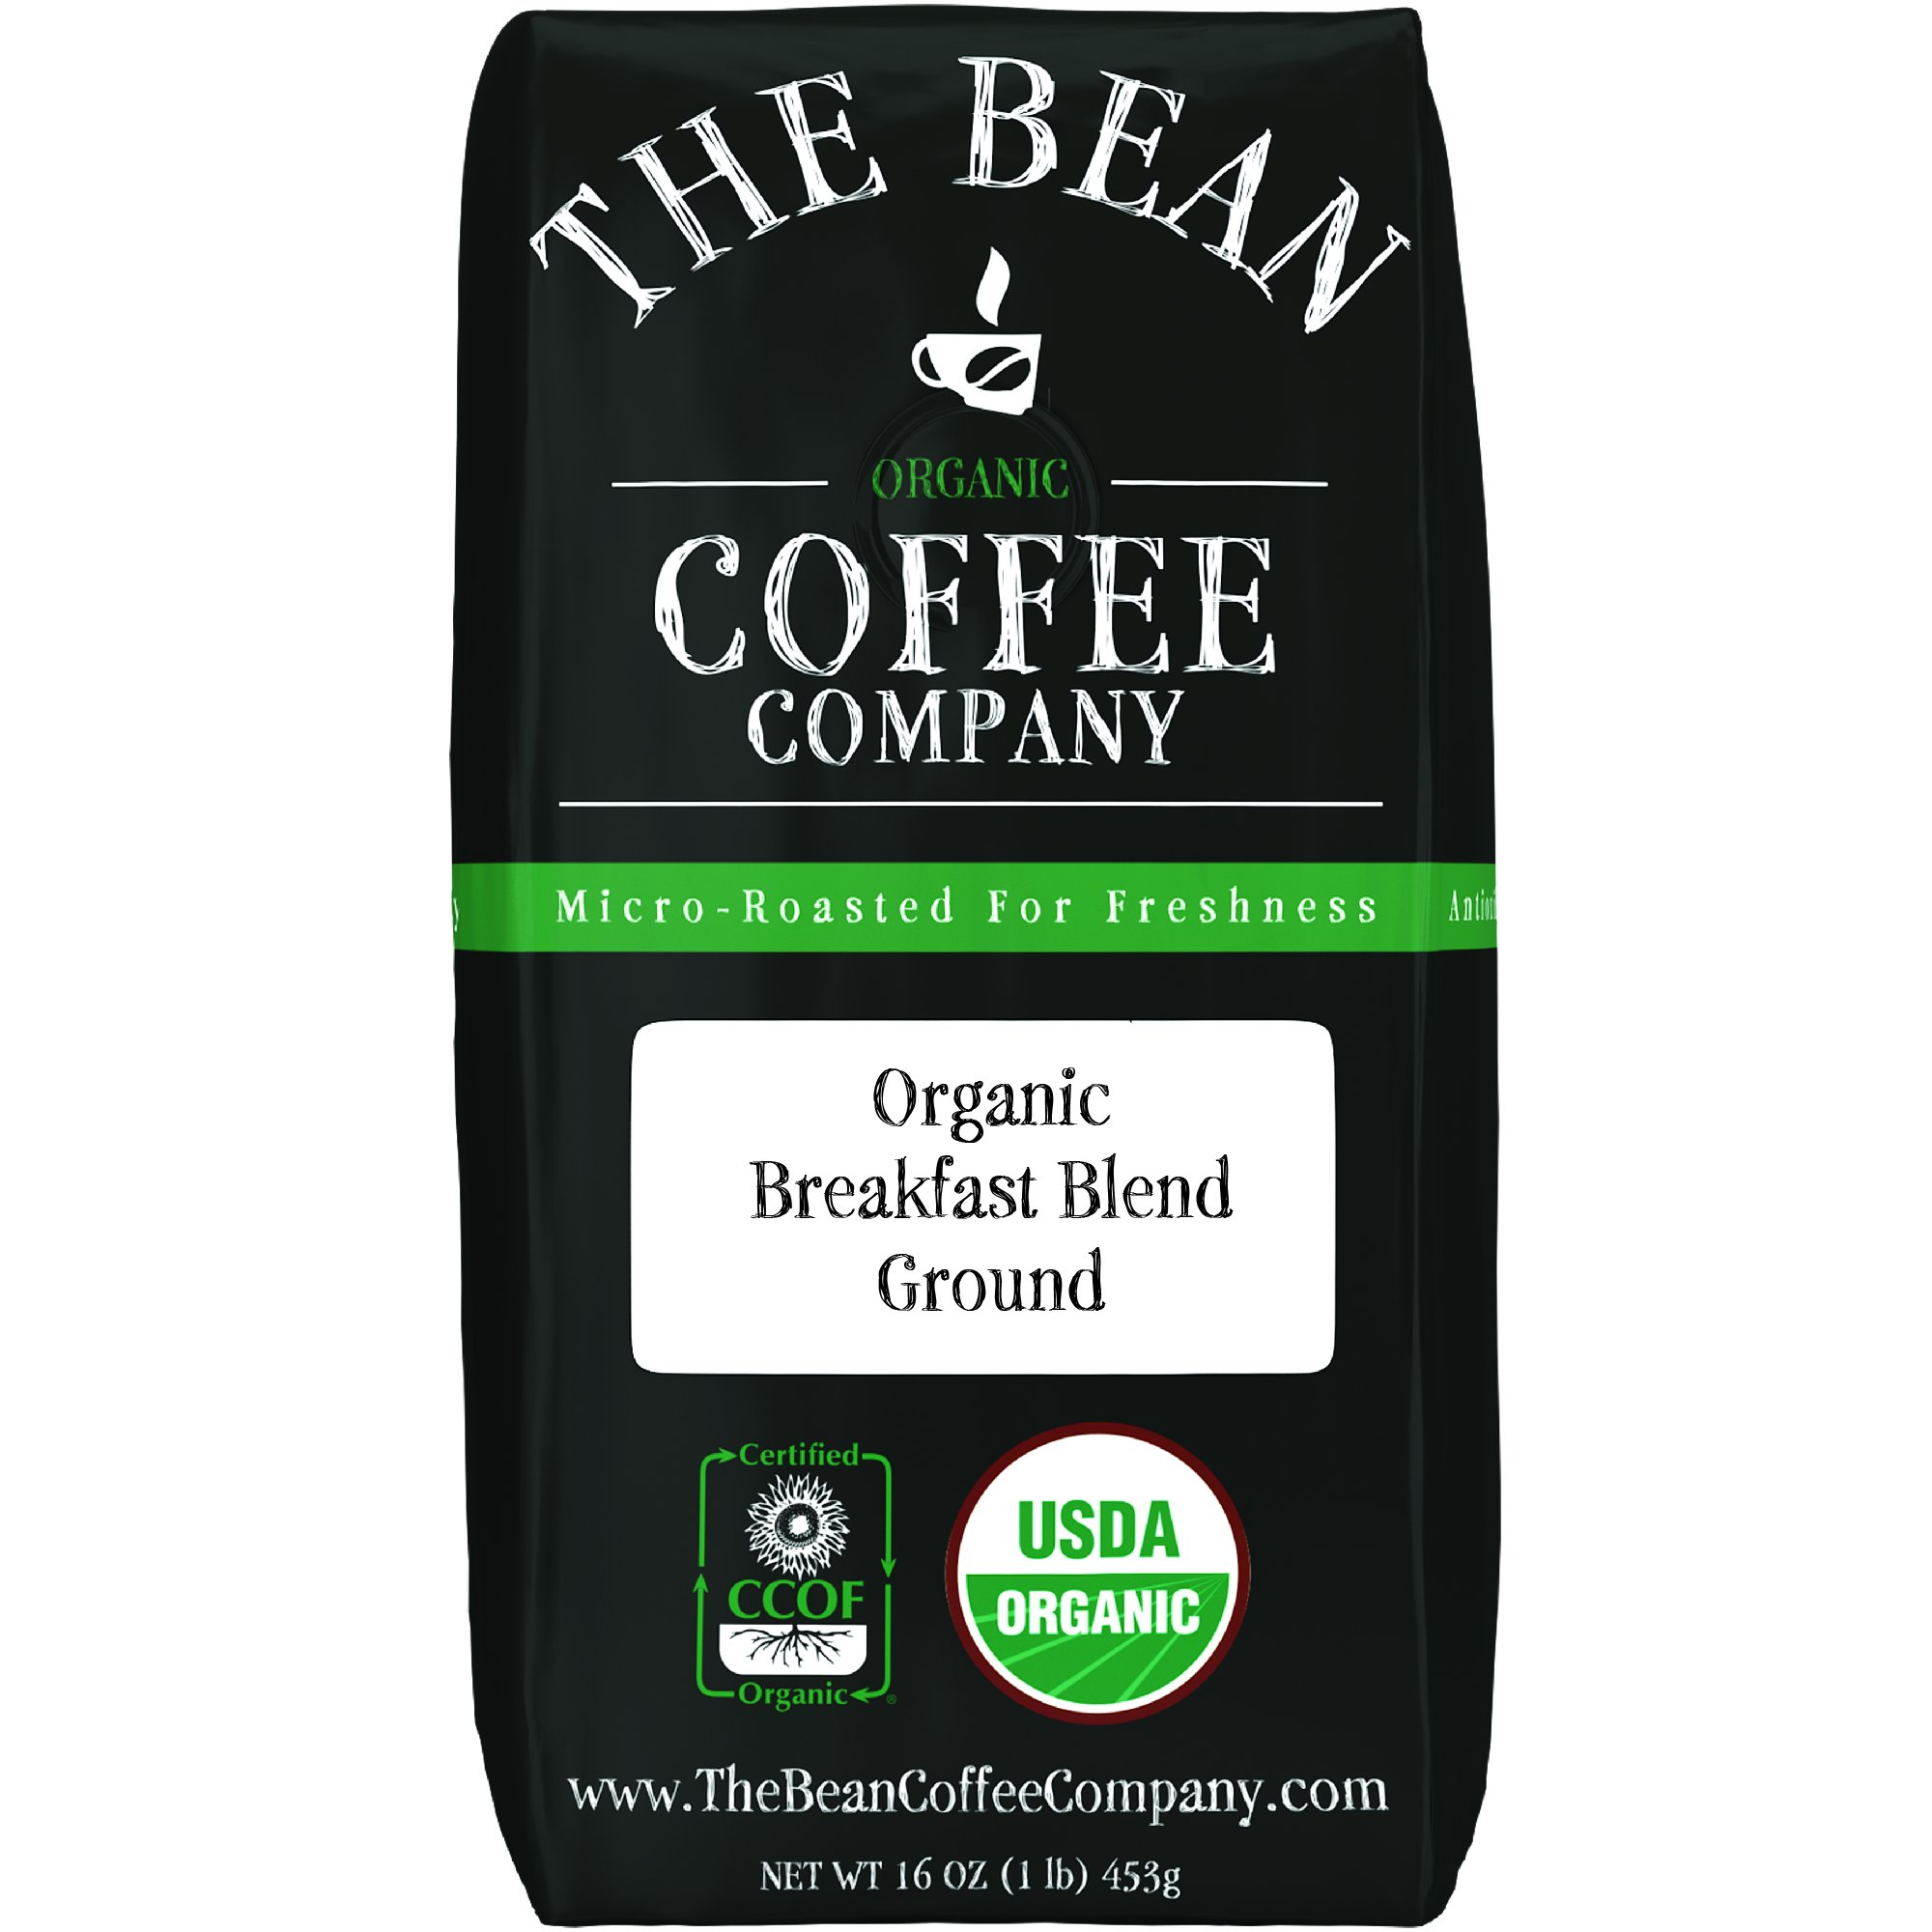 The Bean Coffee Company Organic Breakfast Blend, Light Roast, Ground, 16-Ounce Bag